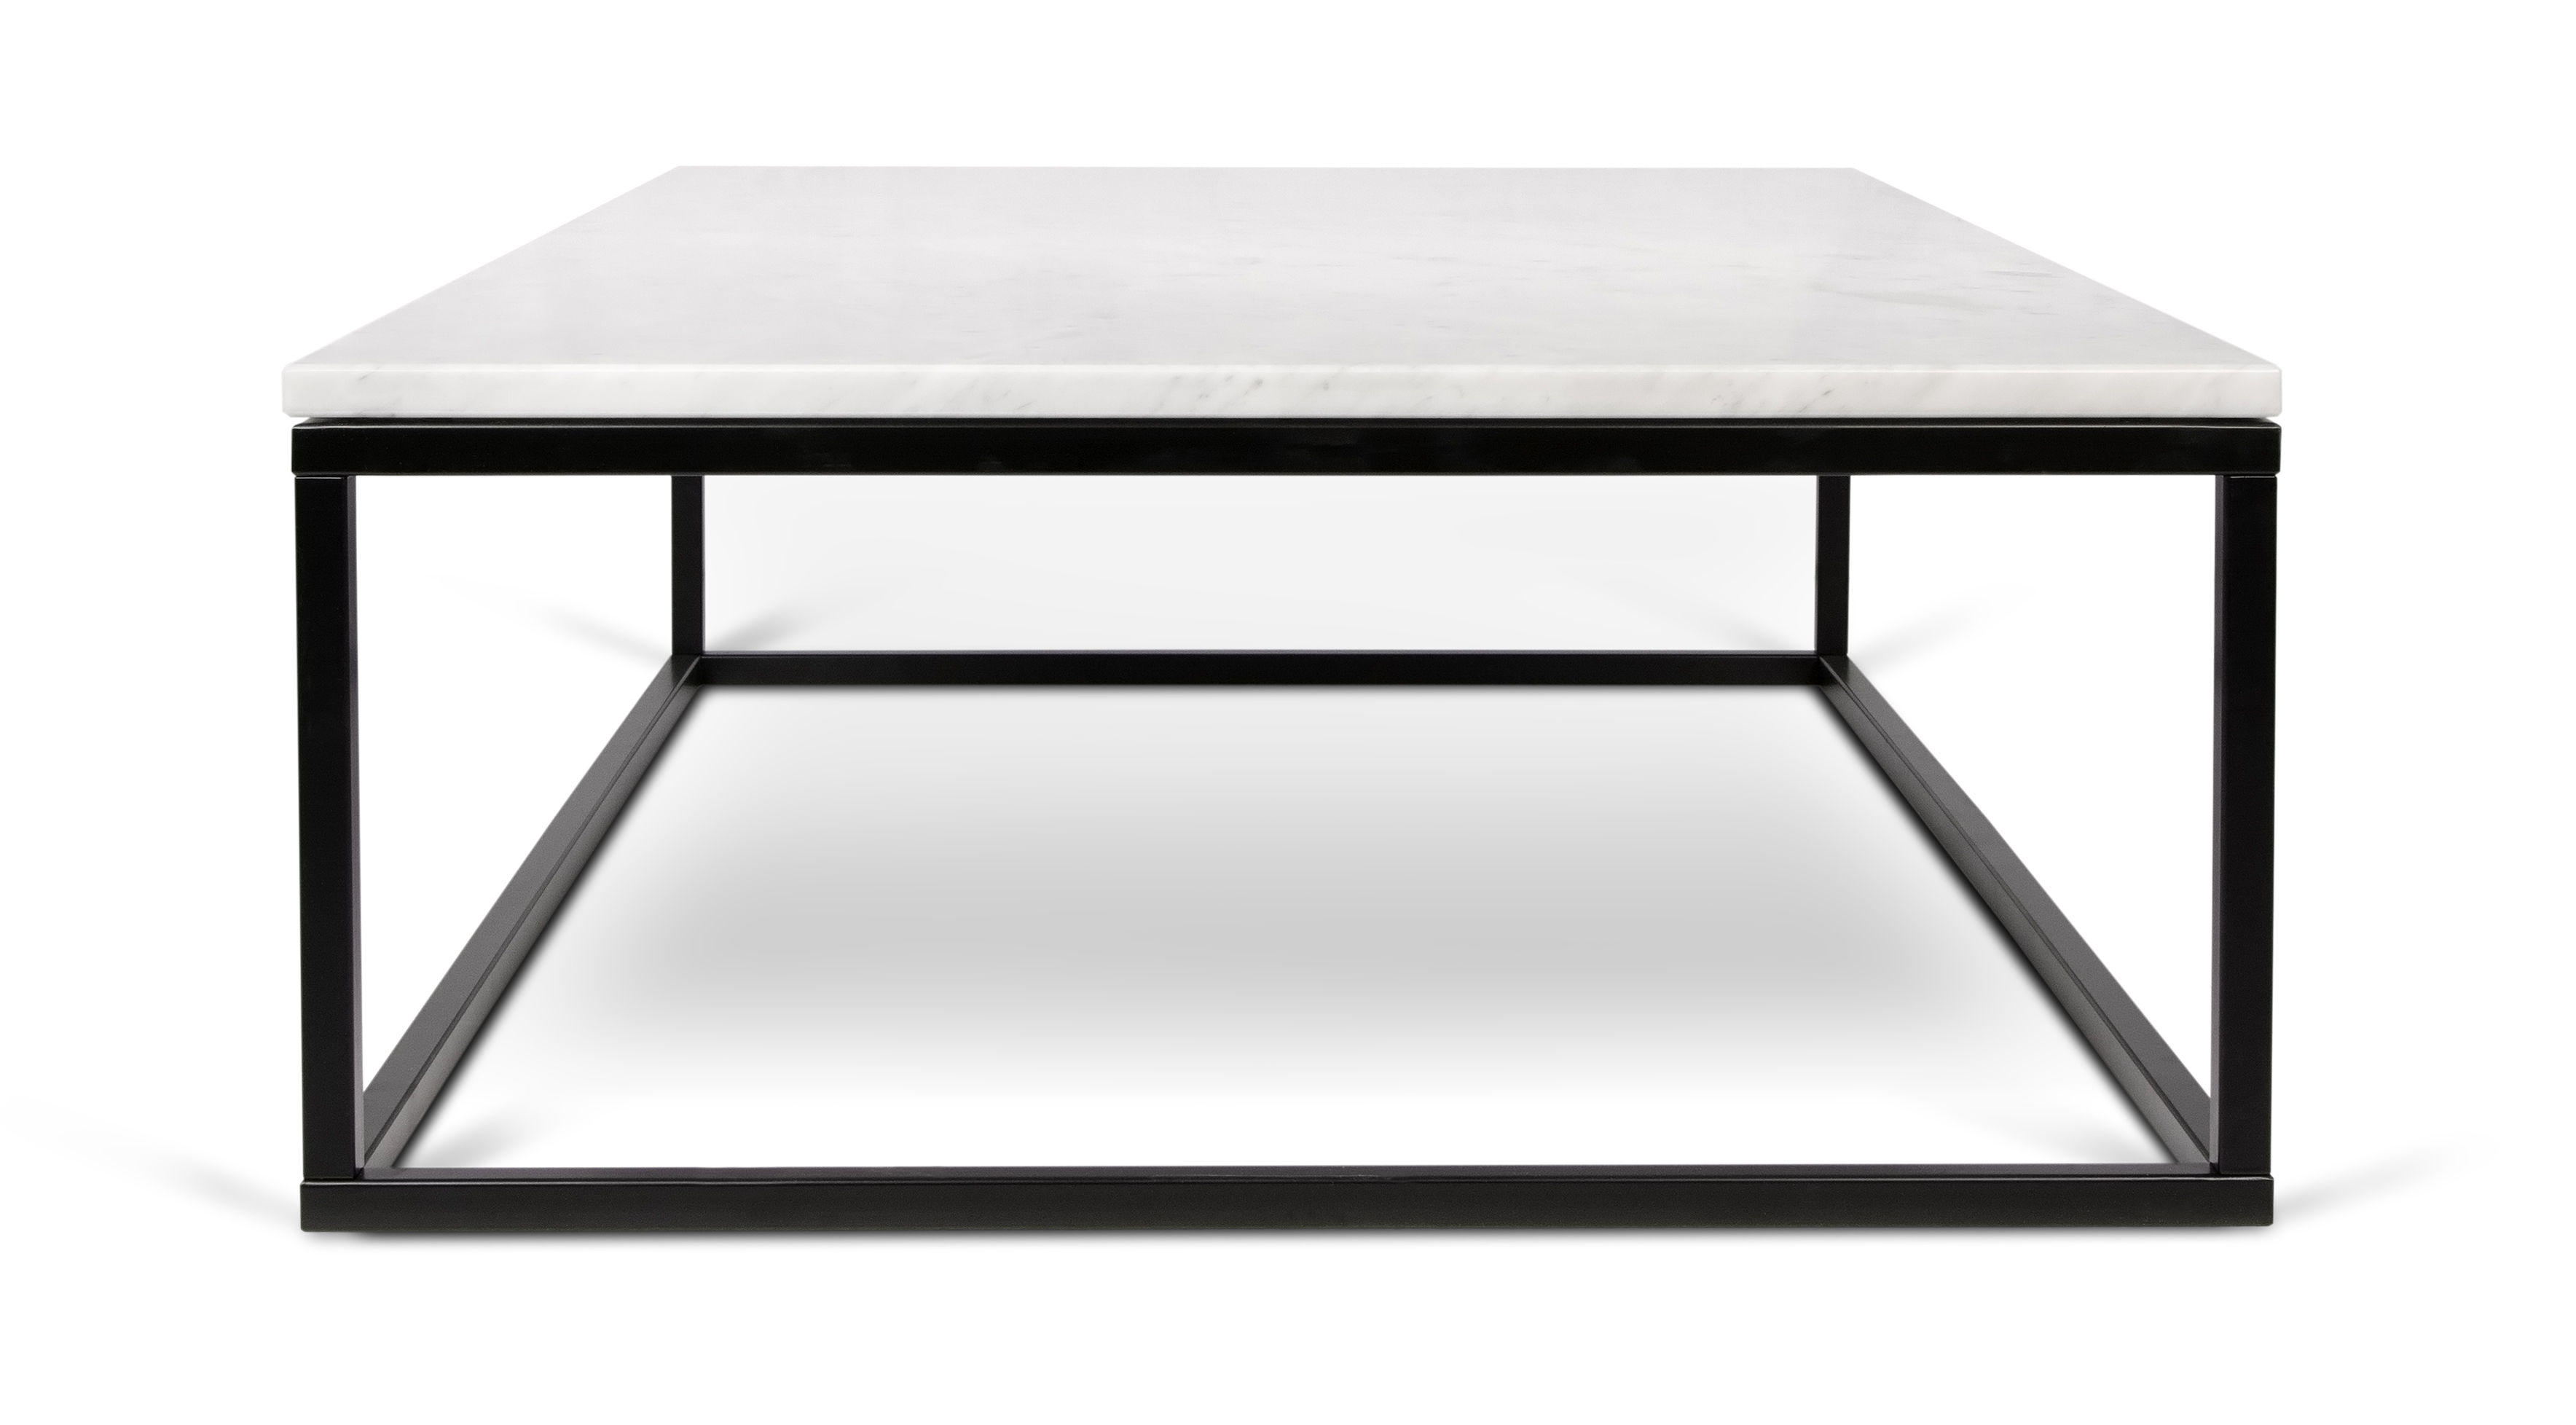 marble coffee table marble 120 x 75 cm white marble. Black Bedroom Furniture Sets. Home Design Ideas